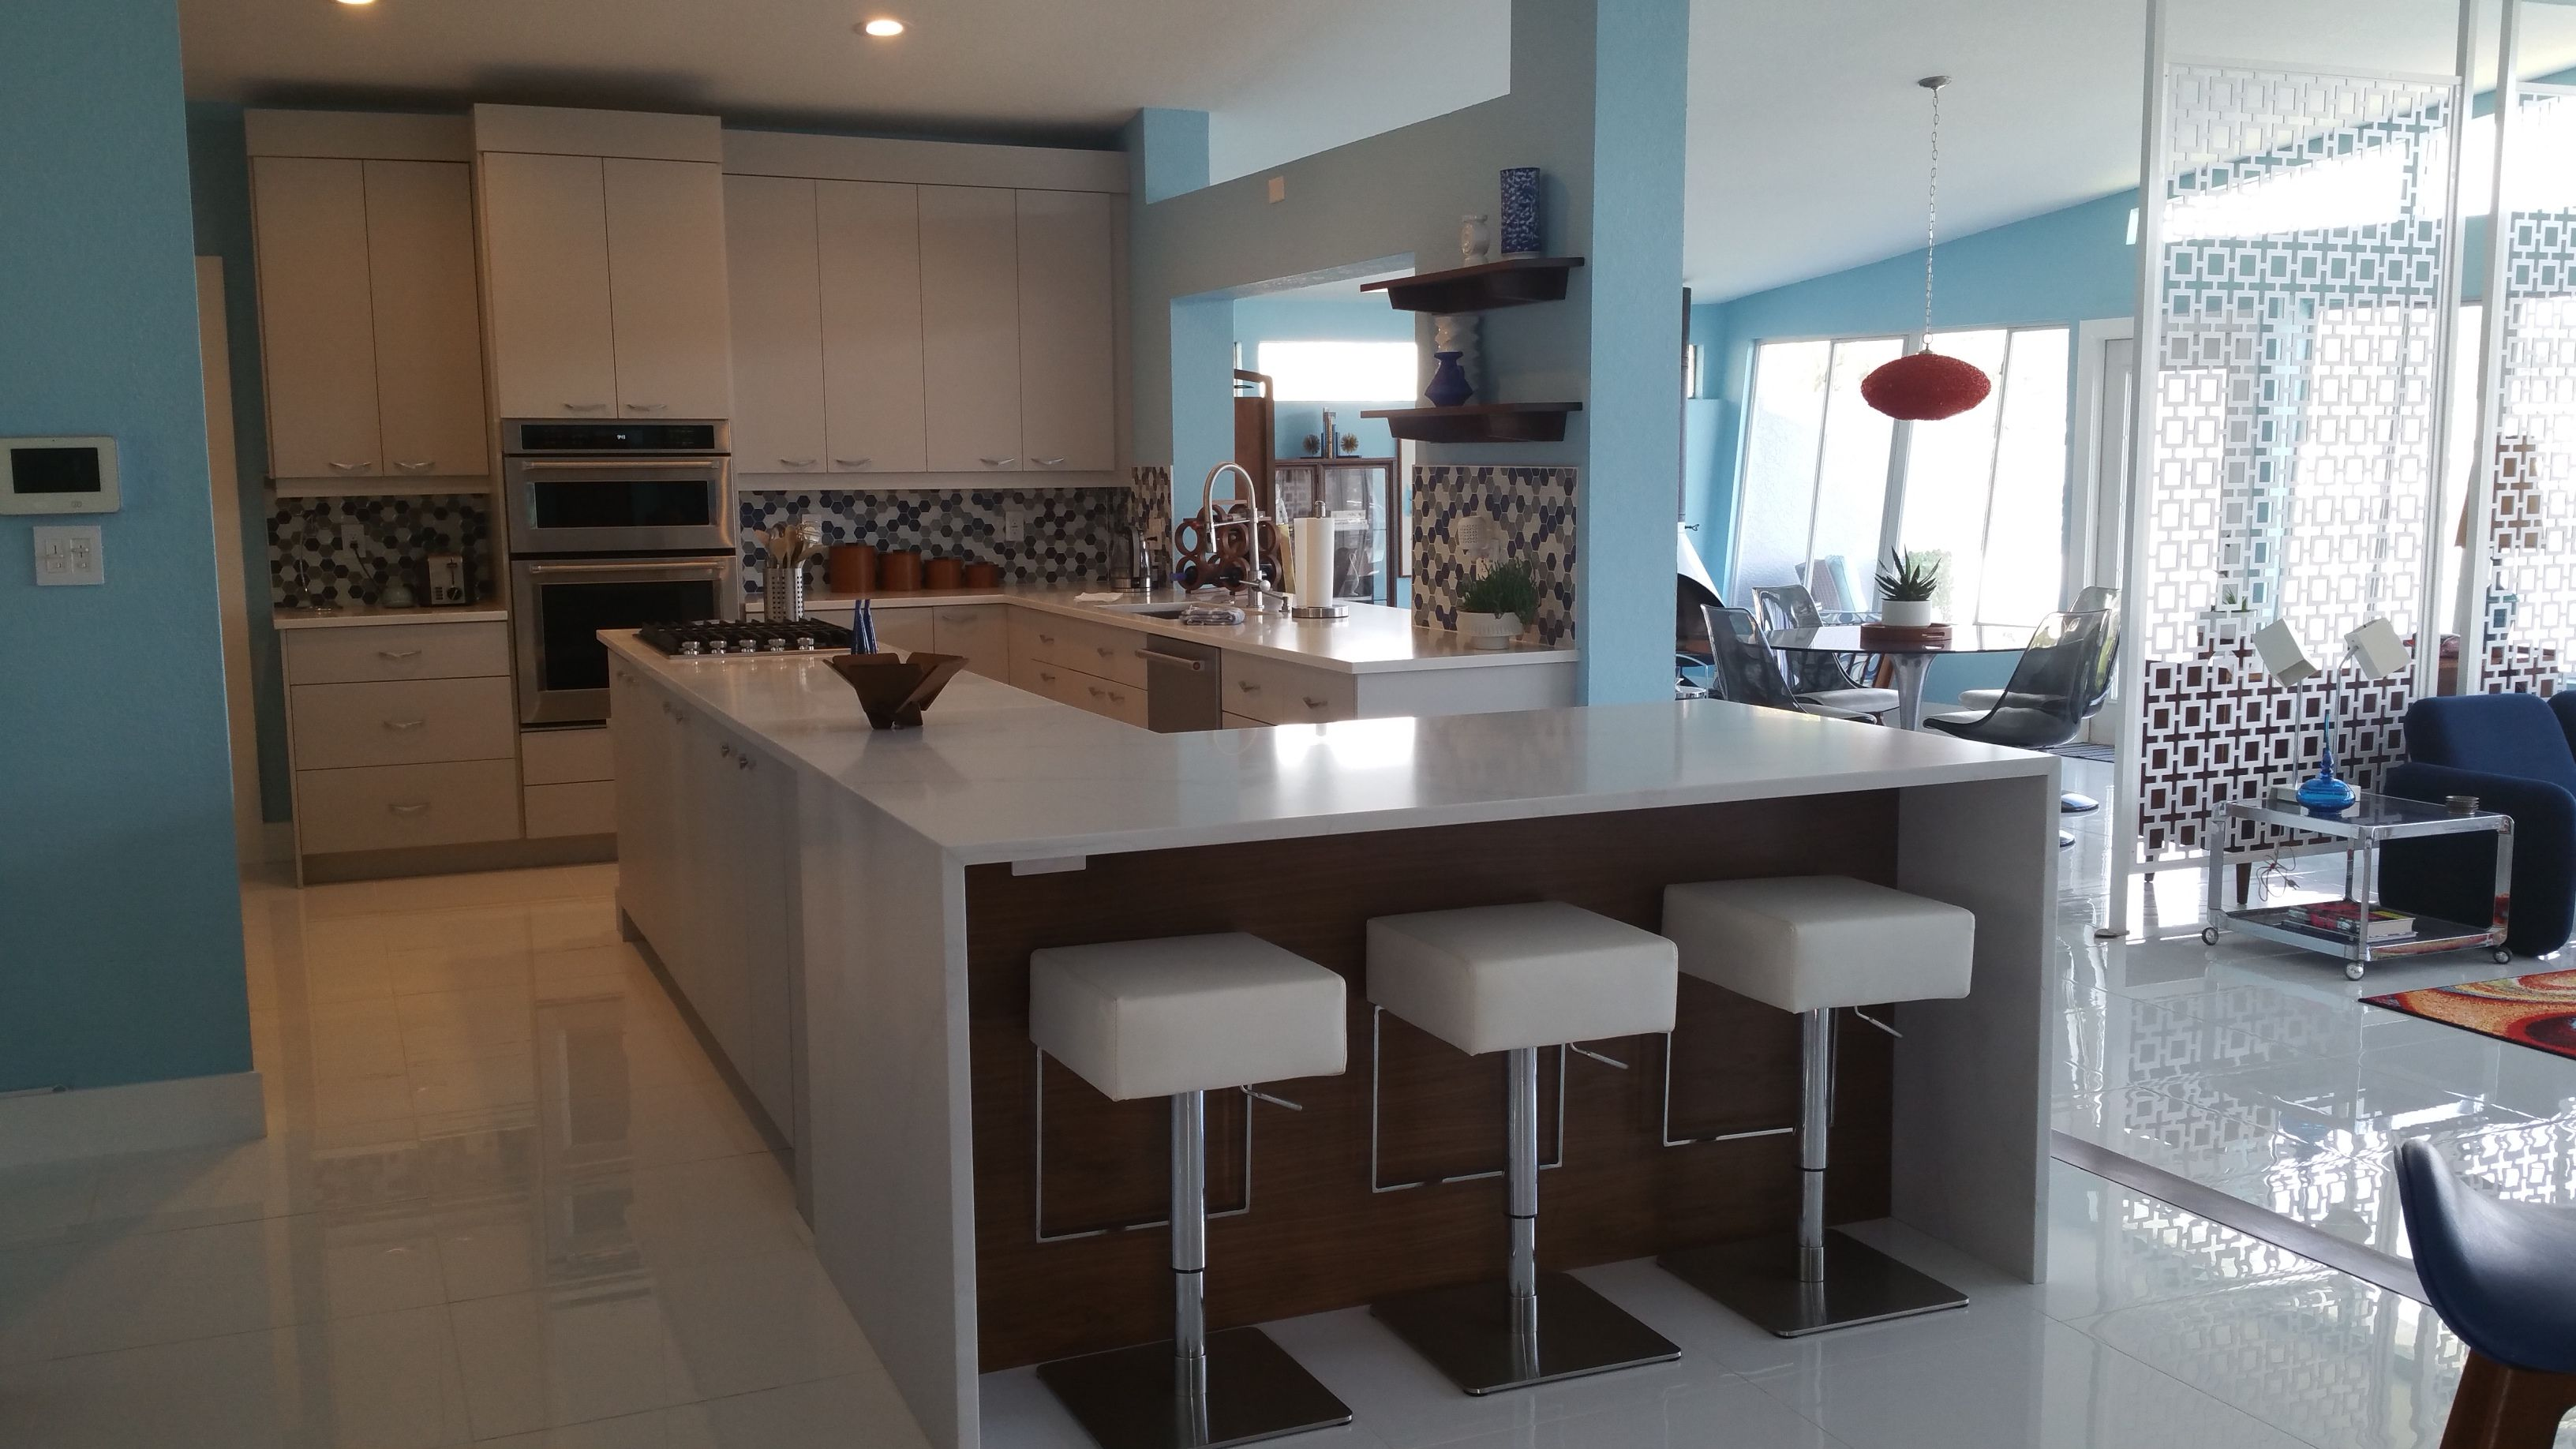 Beach House Ideas Coming To Life My New Mid Century Modern Kitchen Mid Century Modern Kitchen Beach House Modern Kitchen